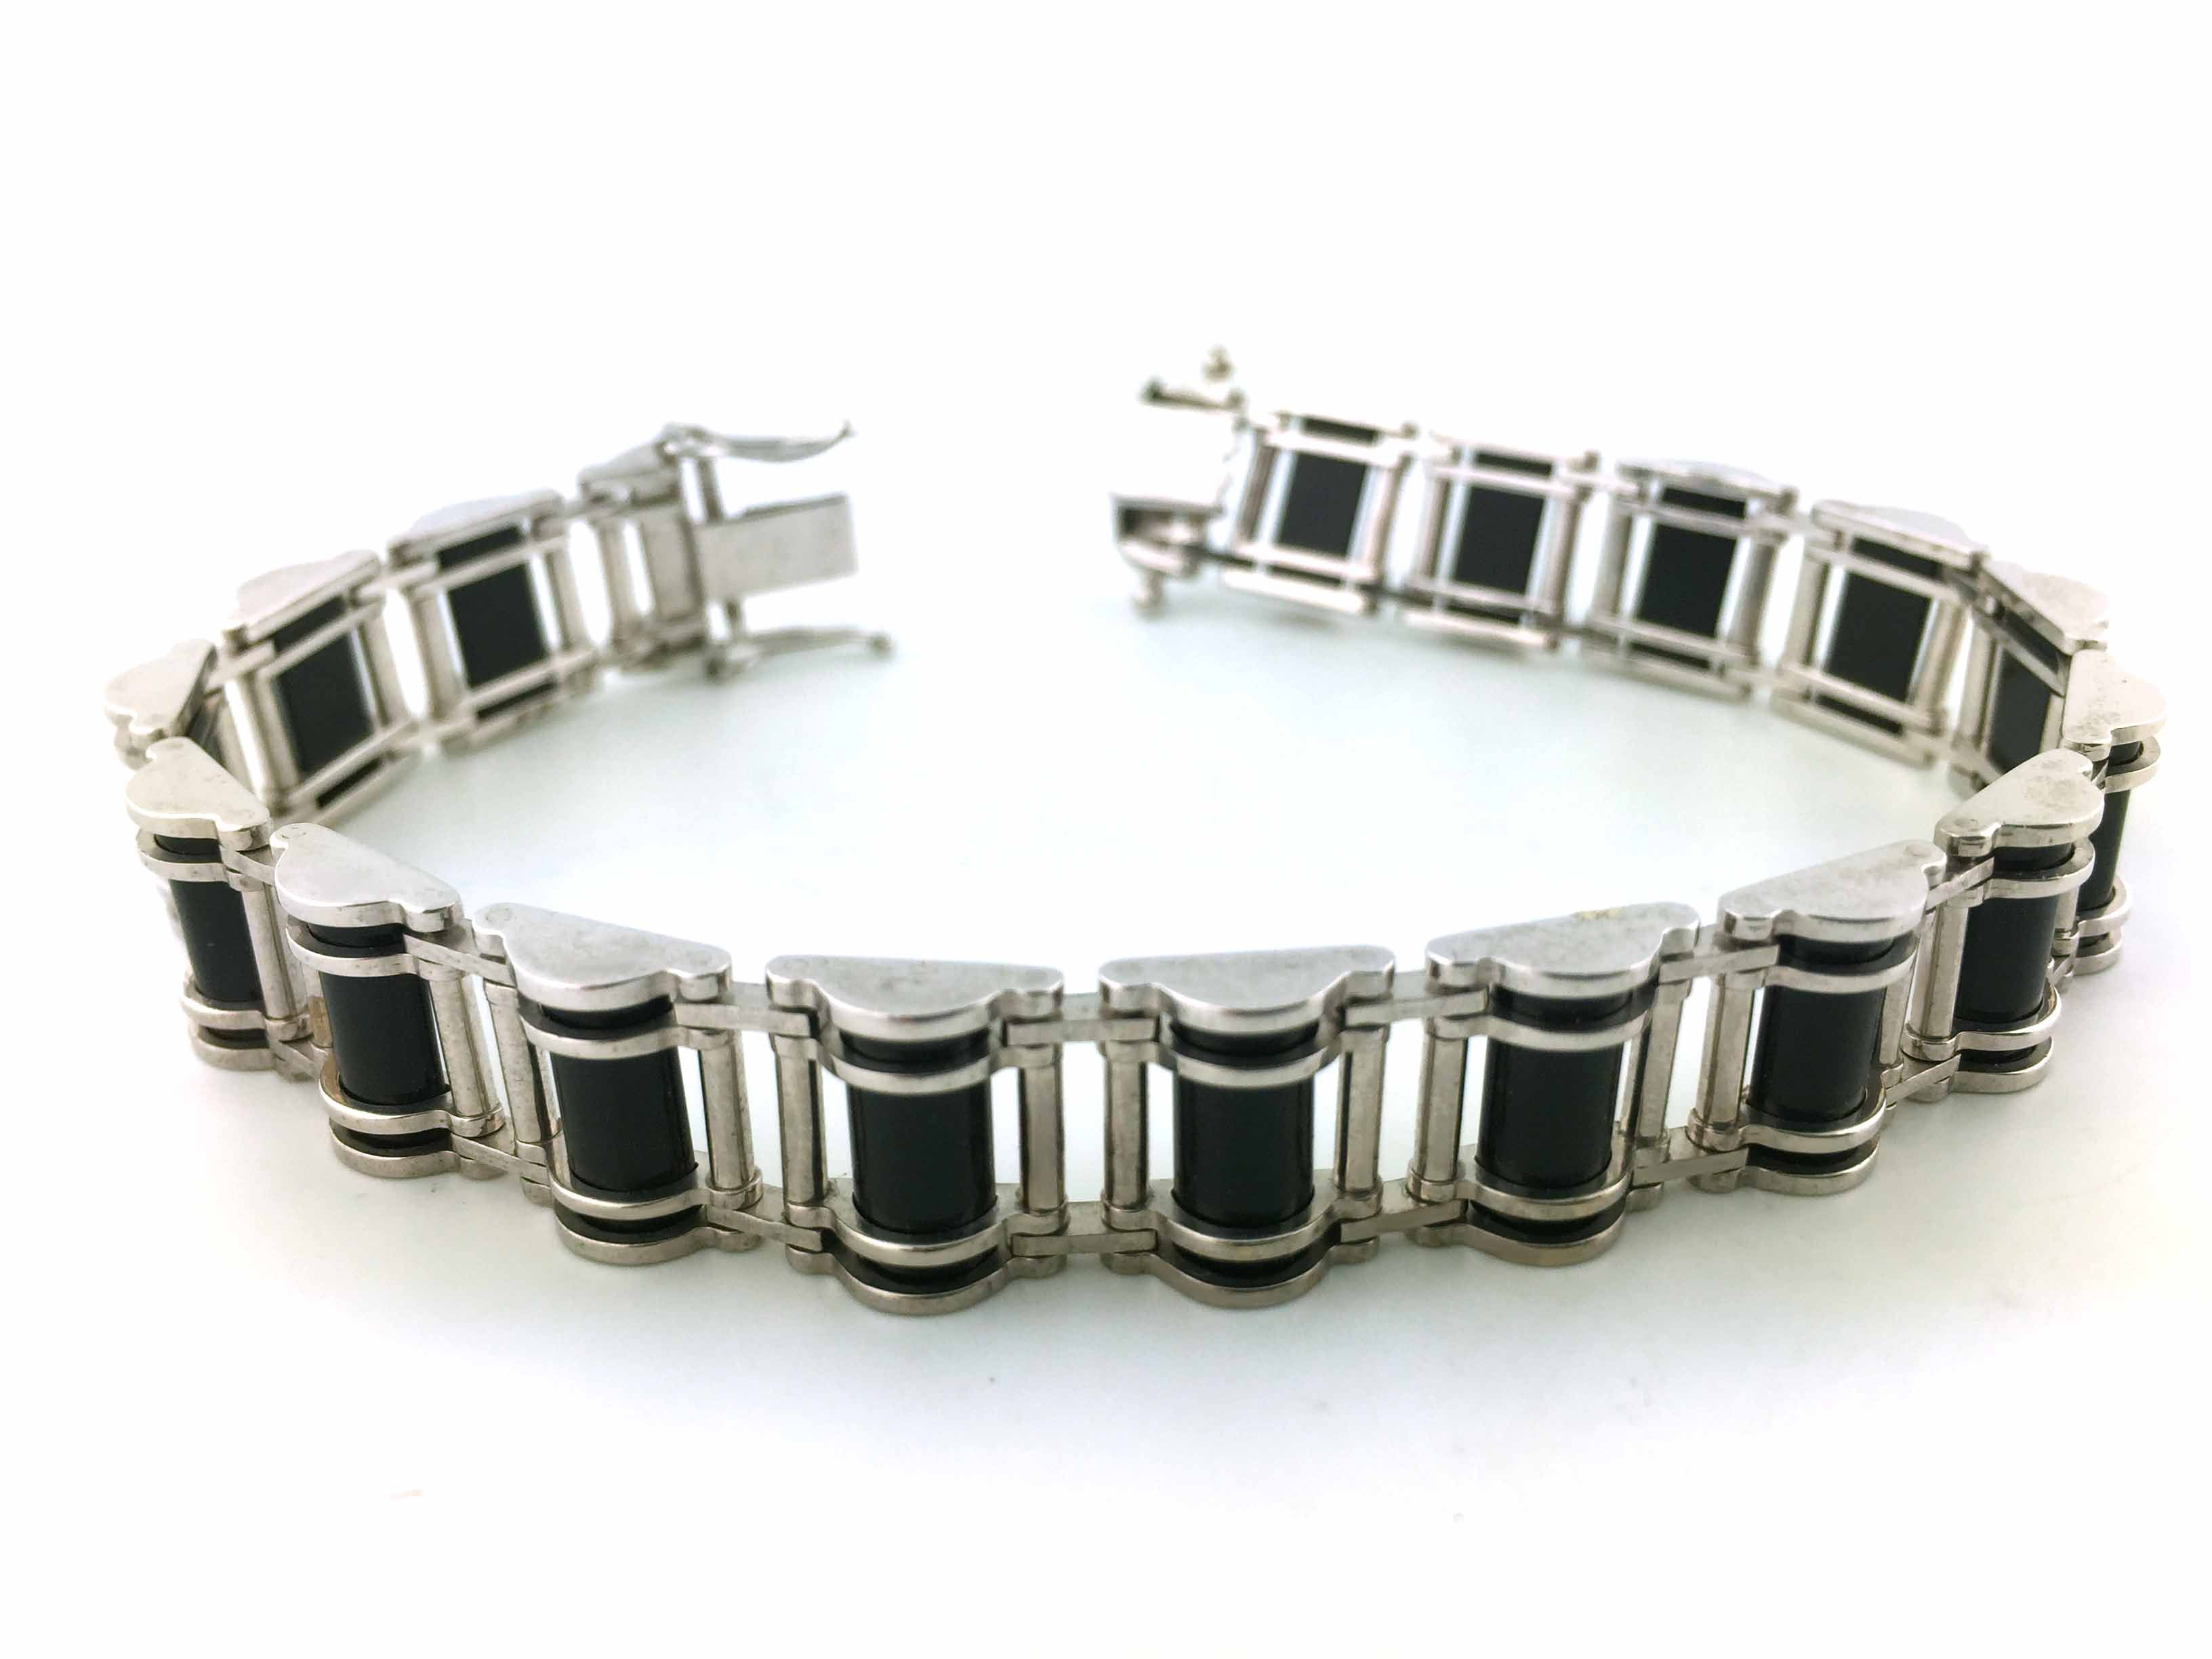 Product Code Iib0016 10k White Gold Mens Bracelet With Black Onyx Gender Men Metal Purity Total Weight 29 8 Gms Rox Price